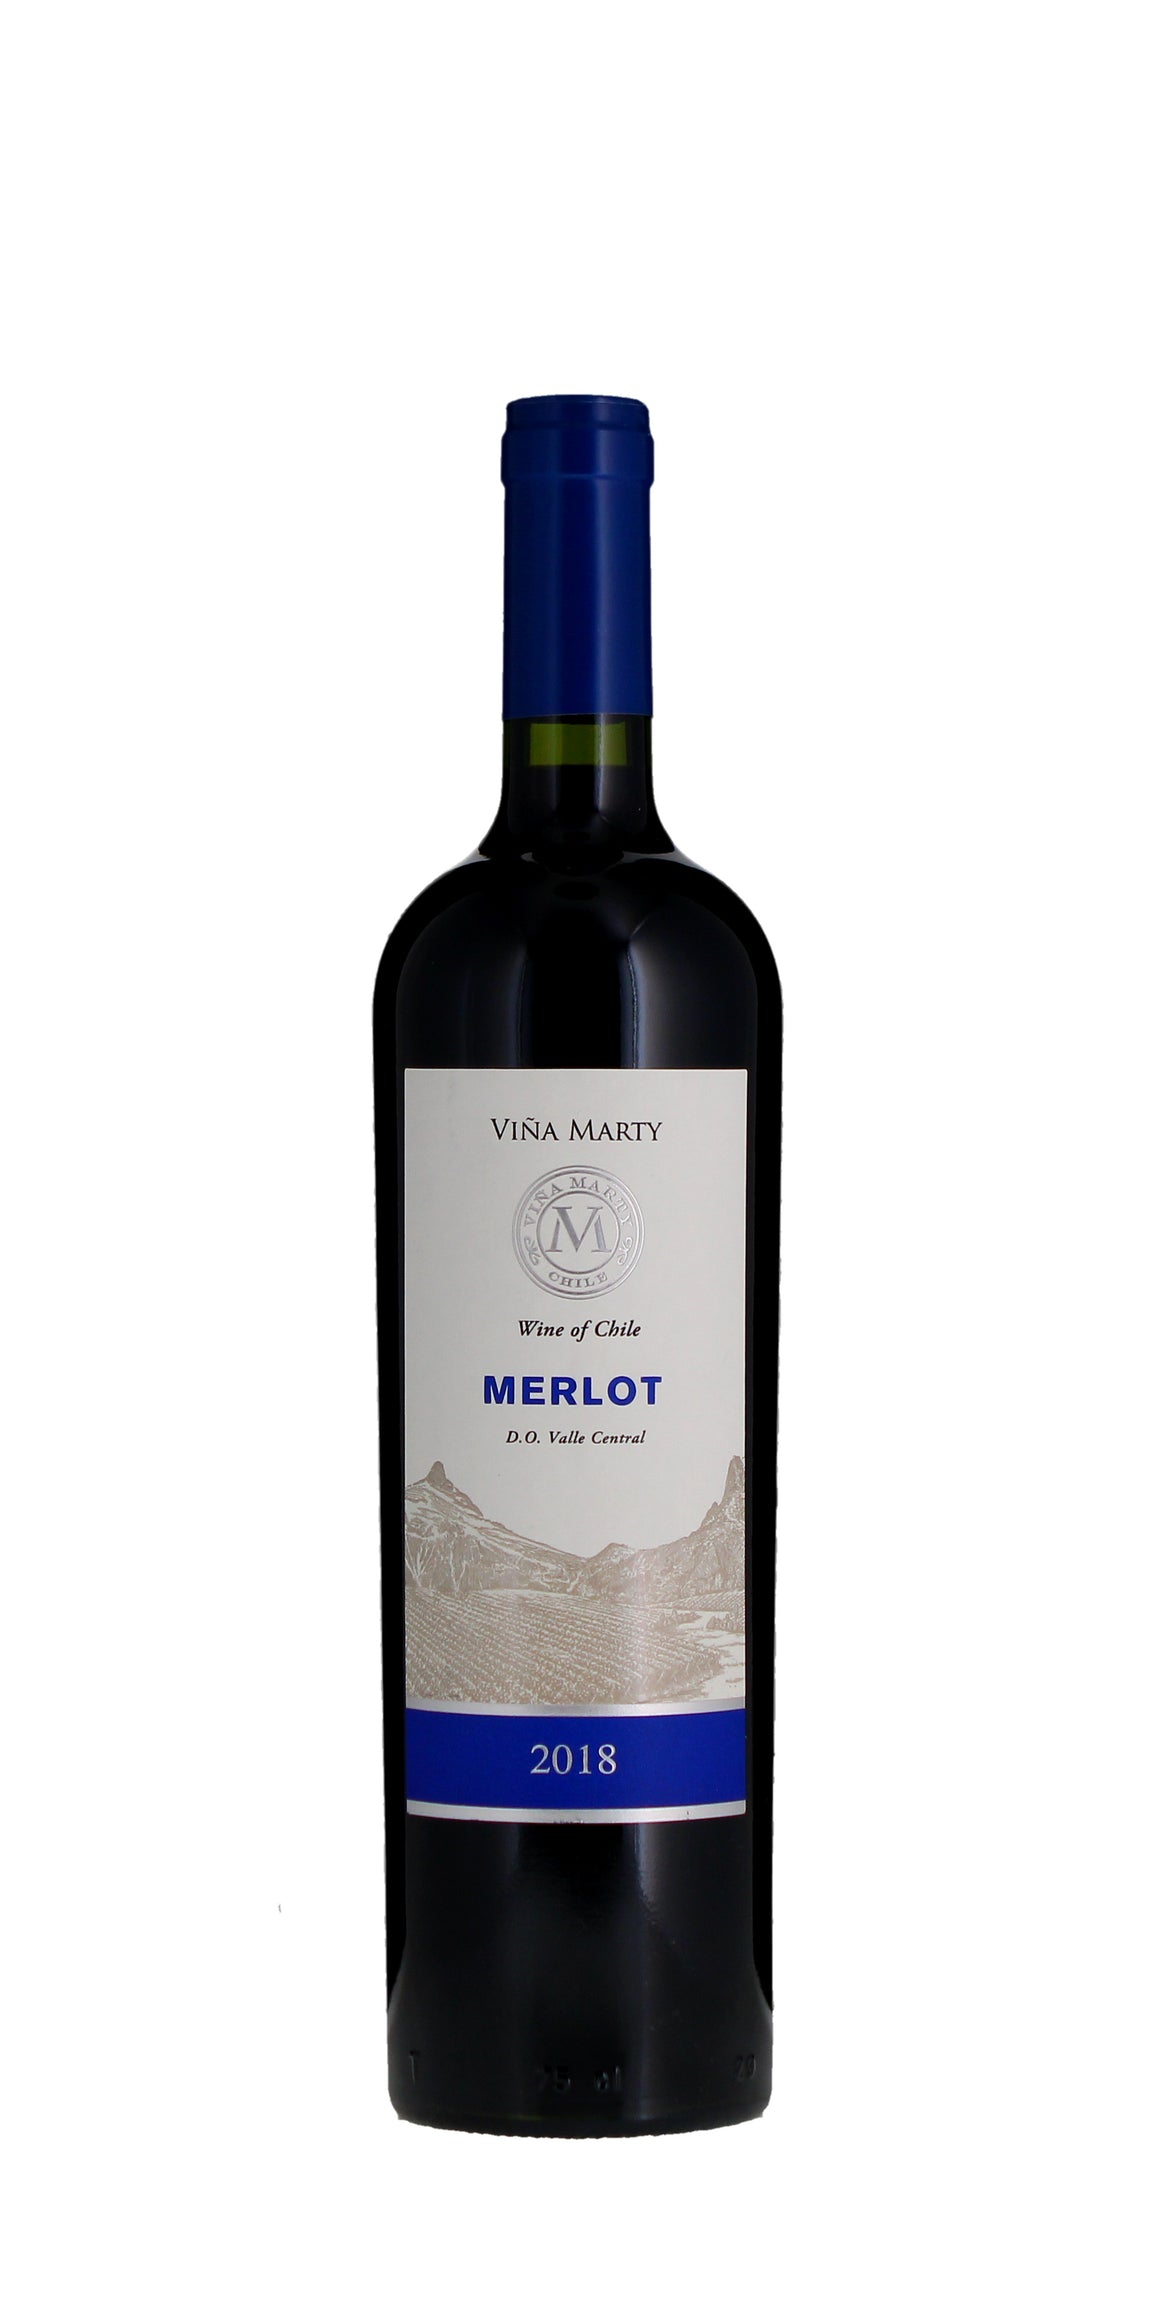 Vina Marty 'Ser' Merlot, Maipo Valley 2018